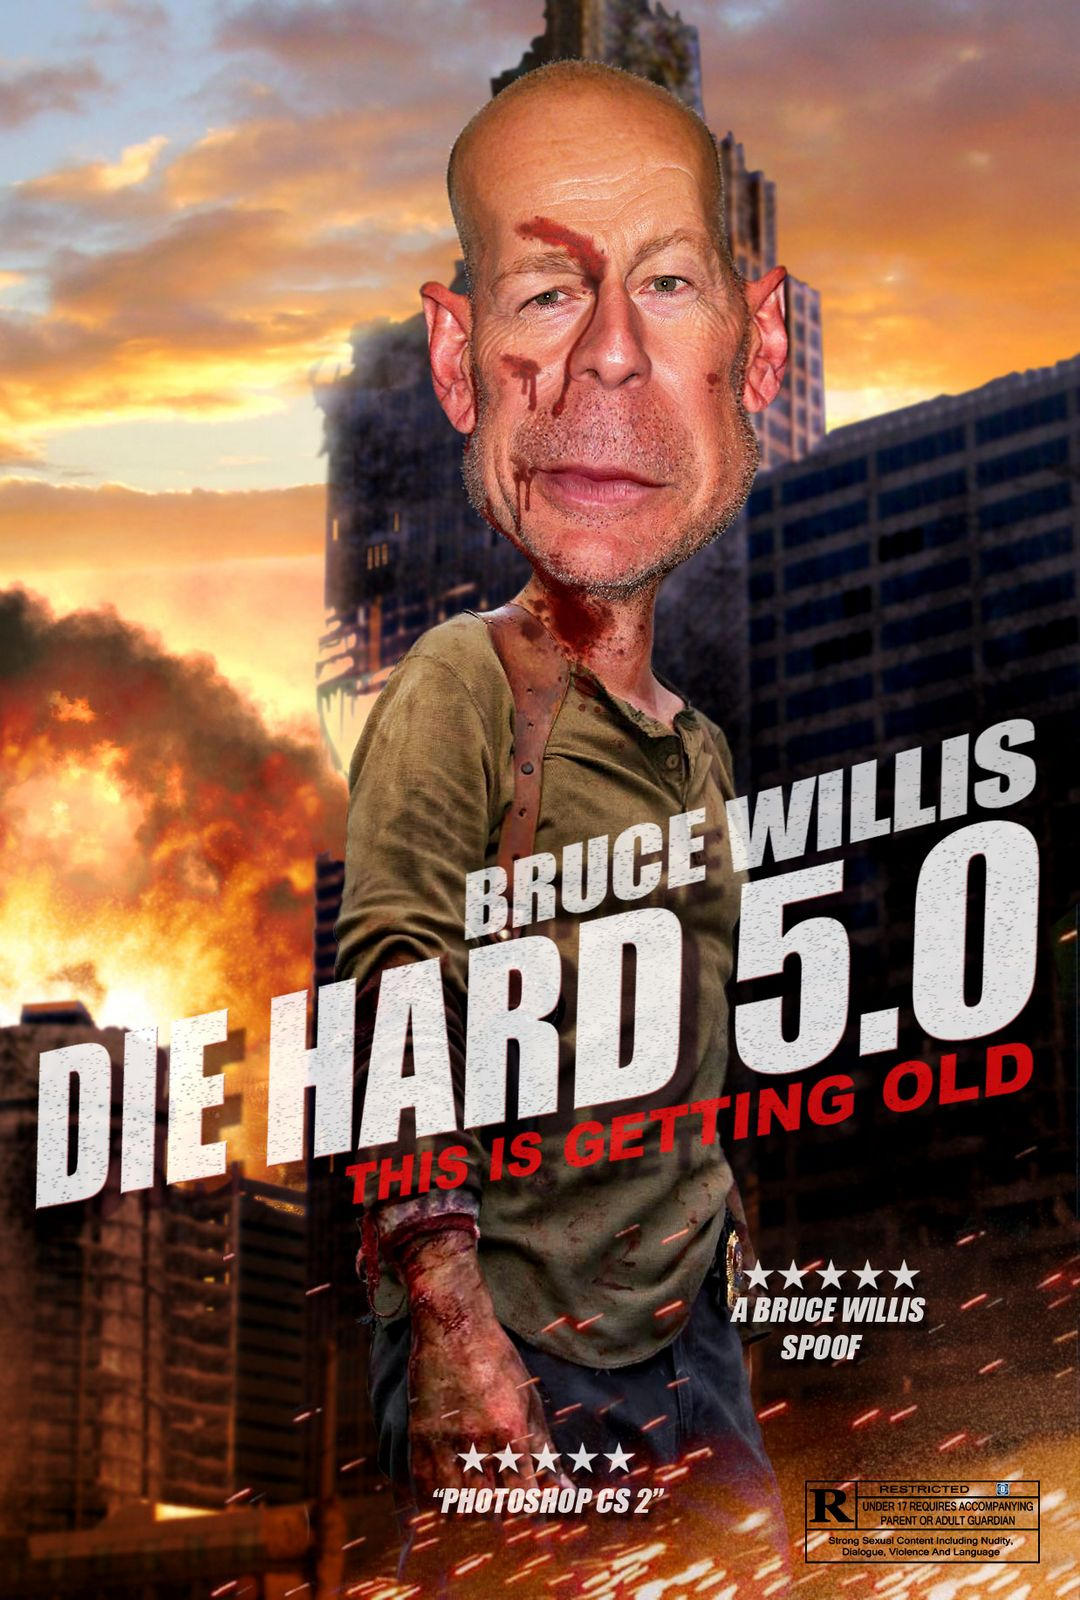 Bruce Willis Spoof Movie Posters